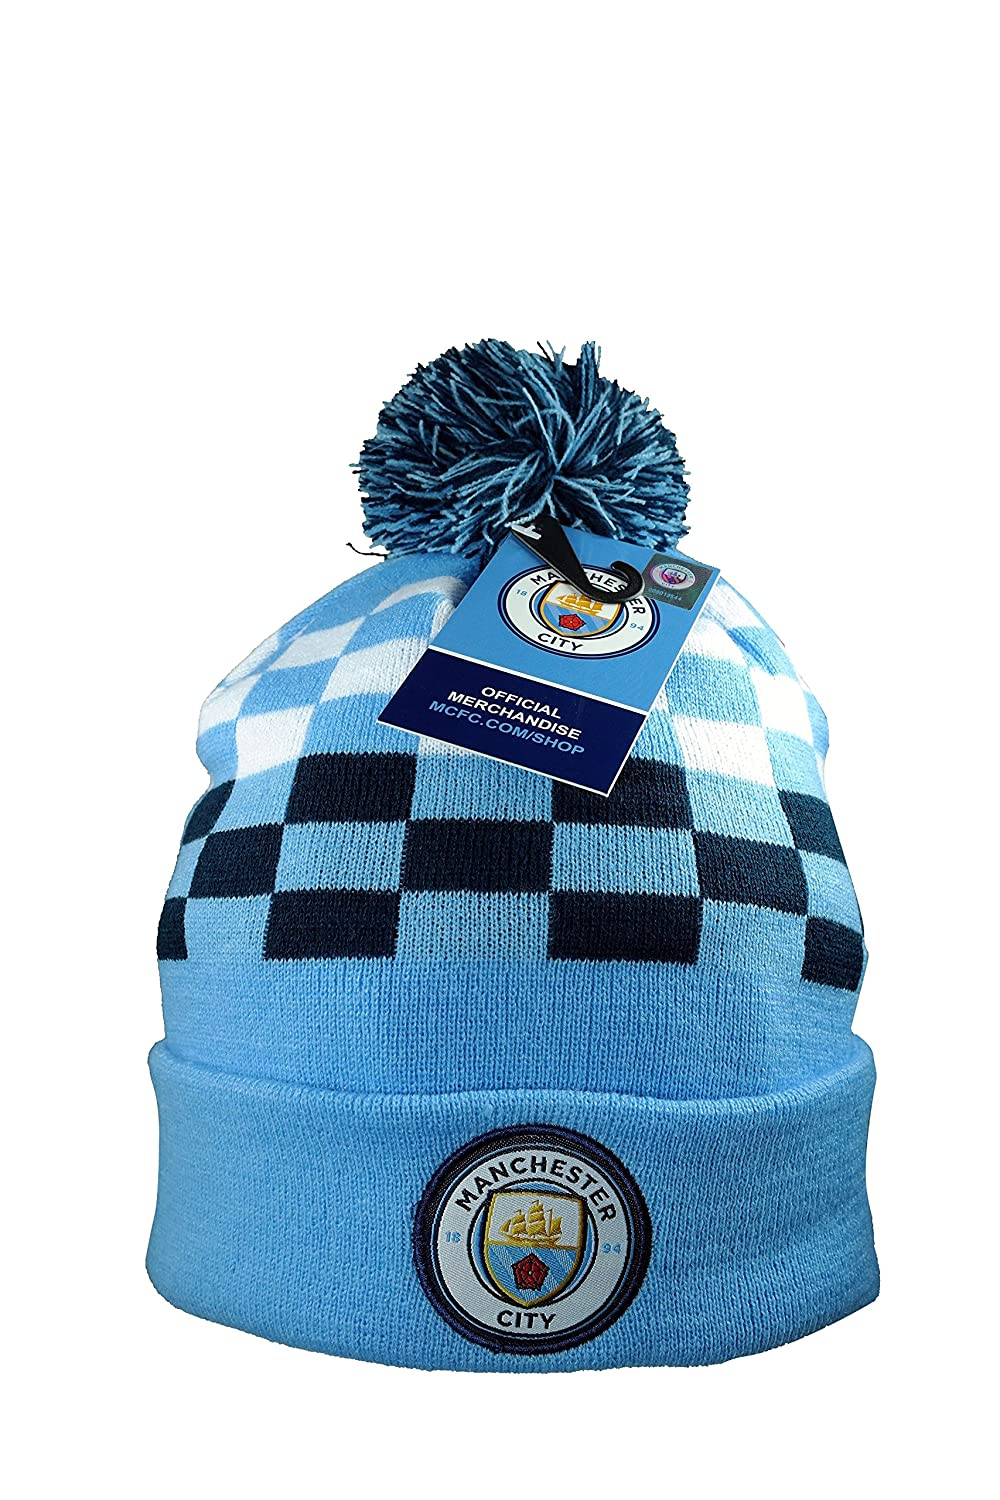 Manchester City F.C. Authentic Official Licensed Product Soccer Beanie 678c8110d1a